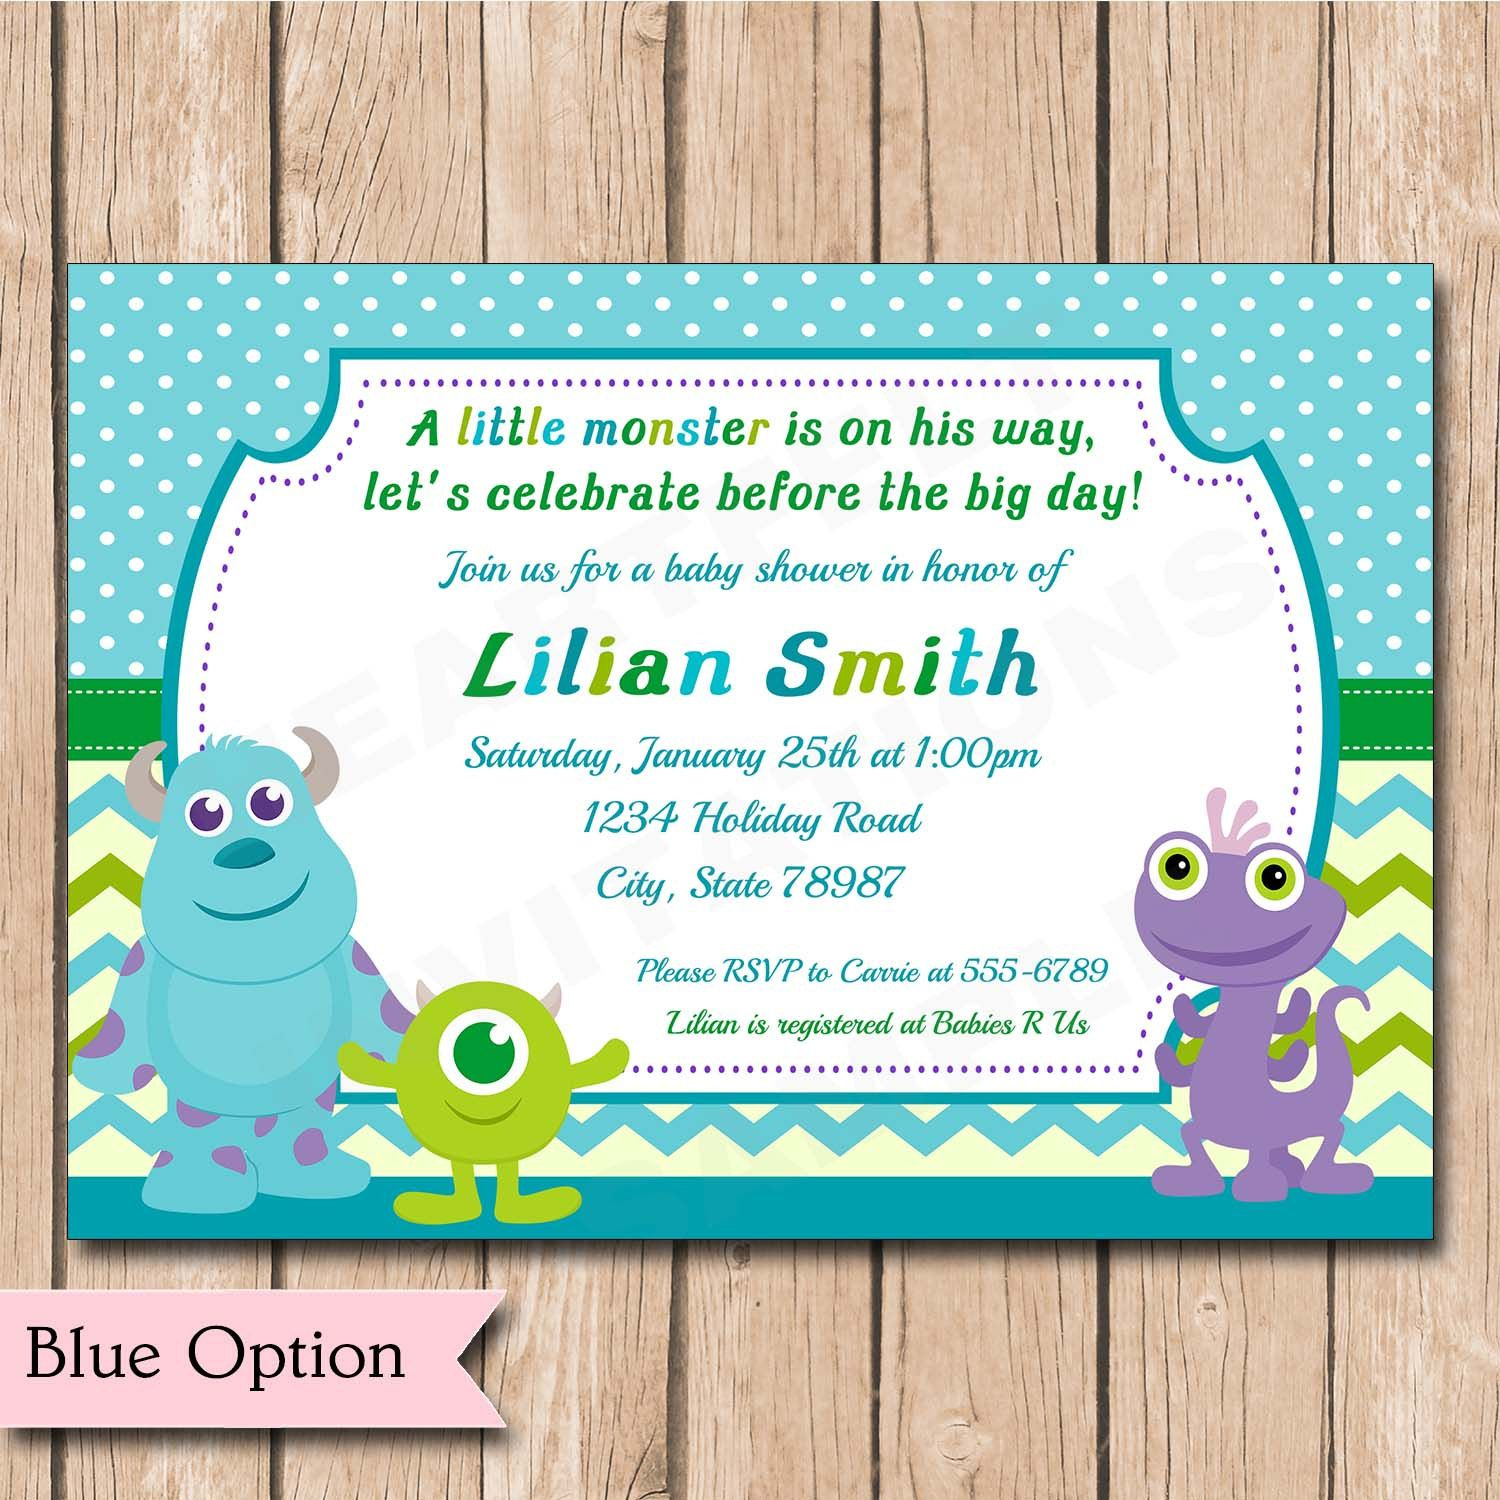 Mini Monsters Inc. Baby Shower Invitation | Boy or Girl, Neutral ...